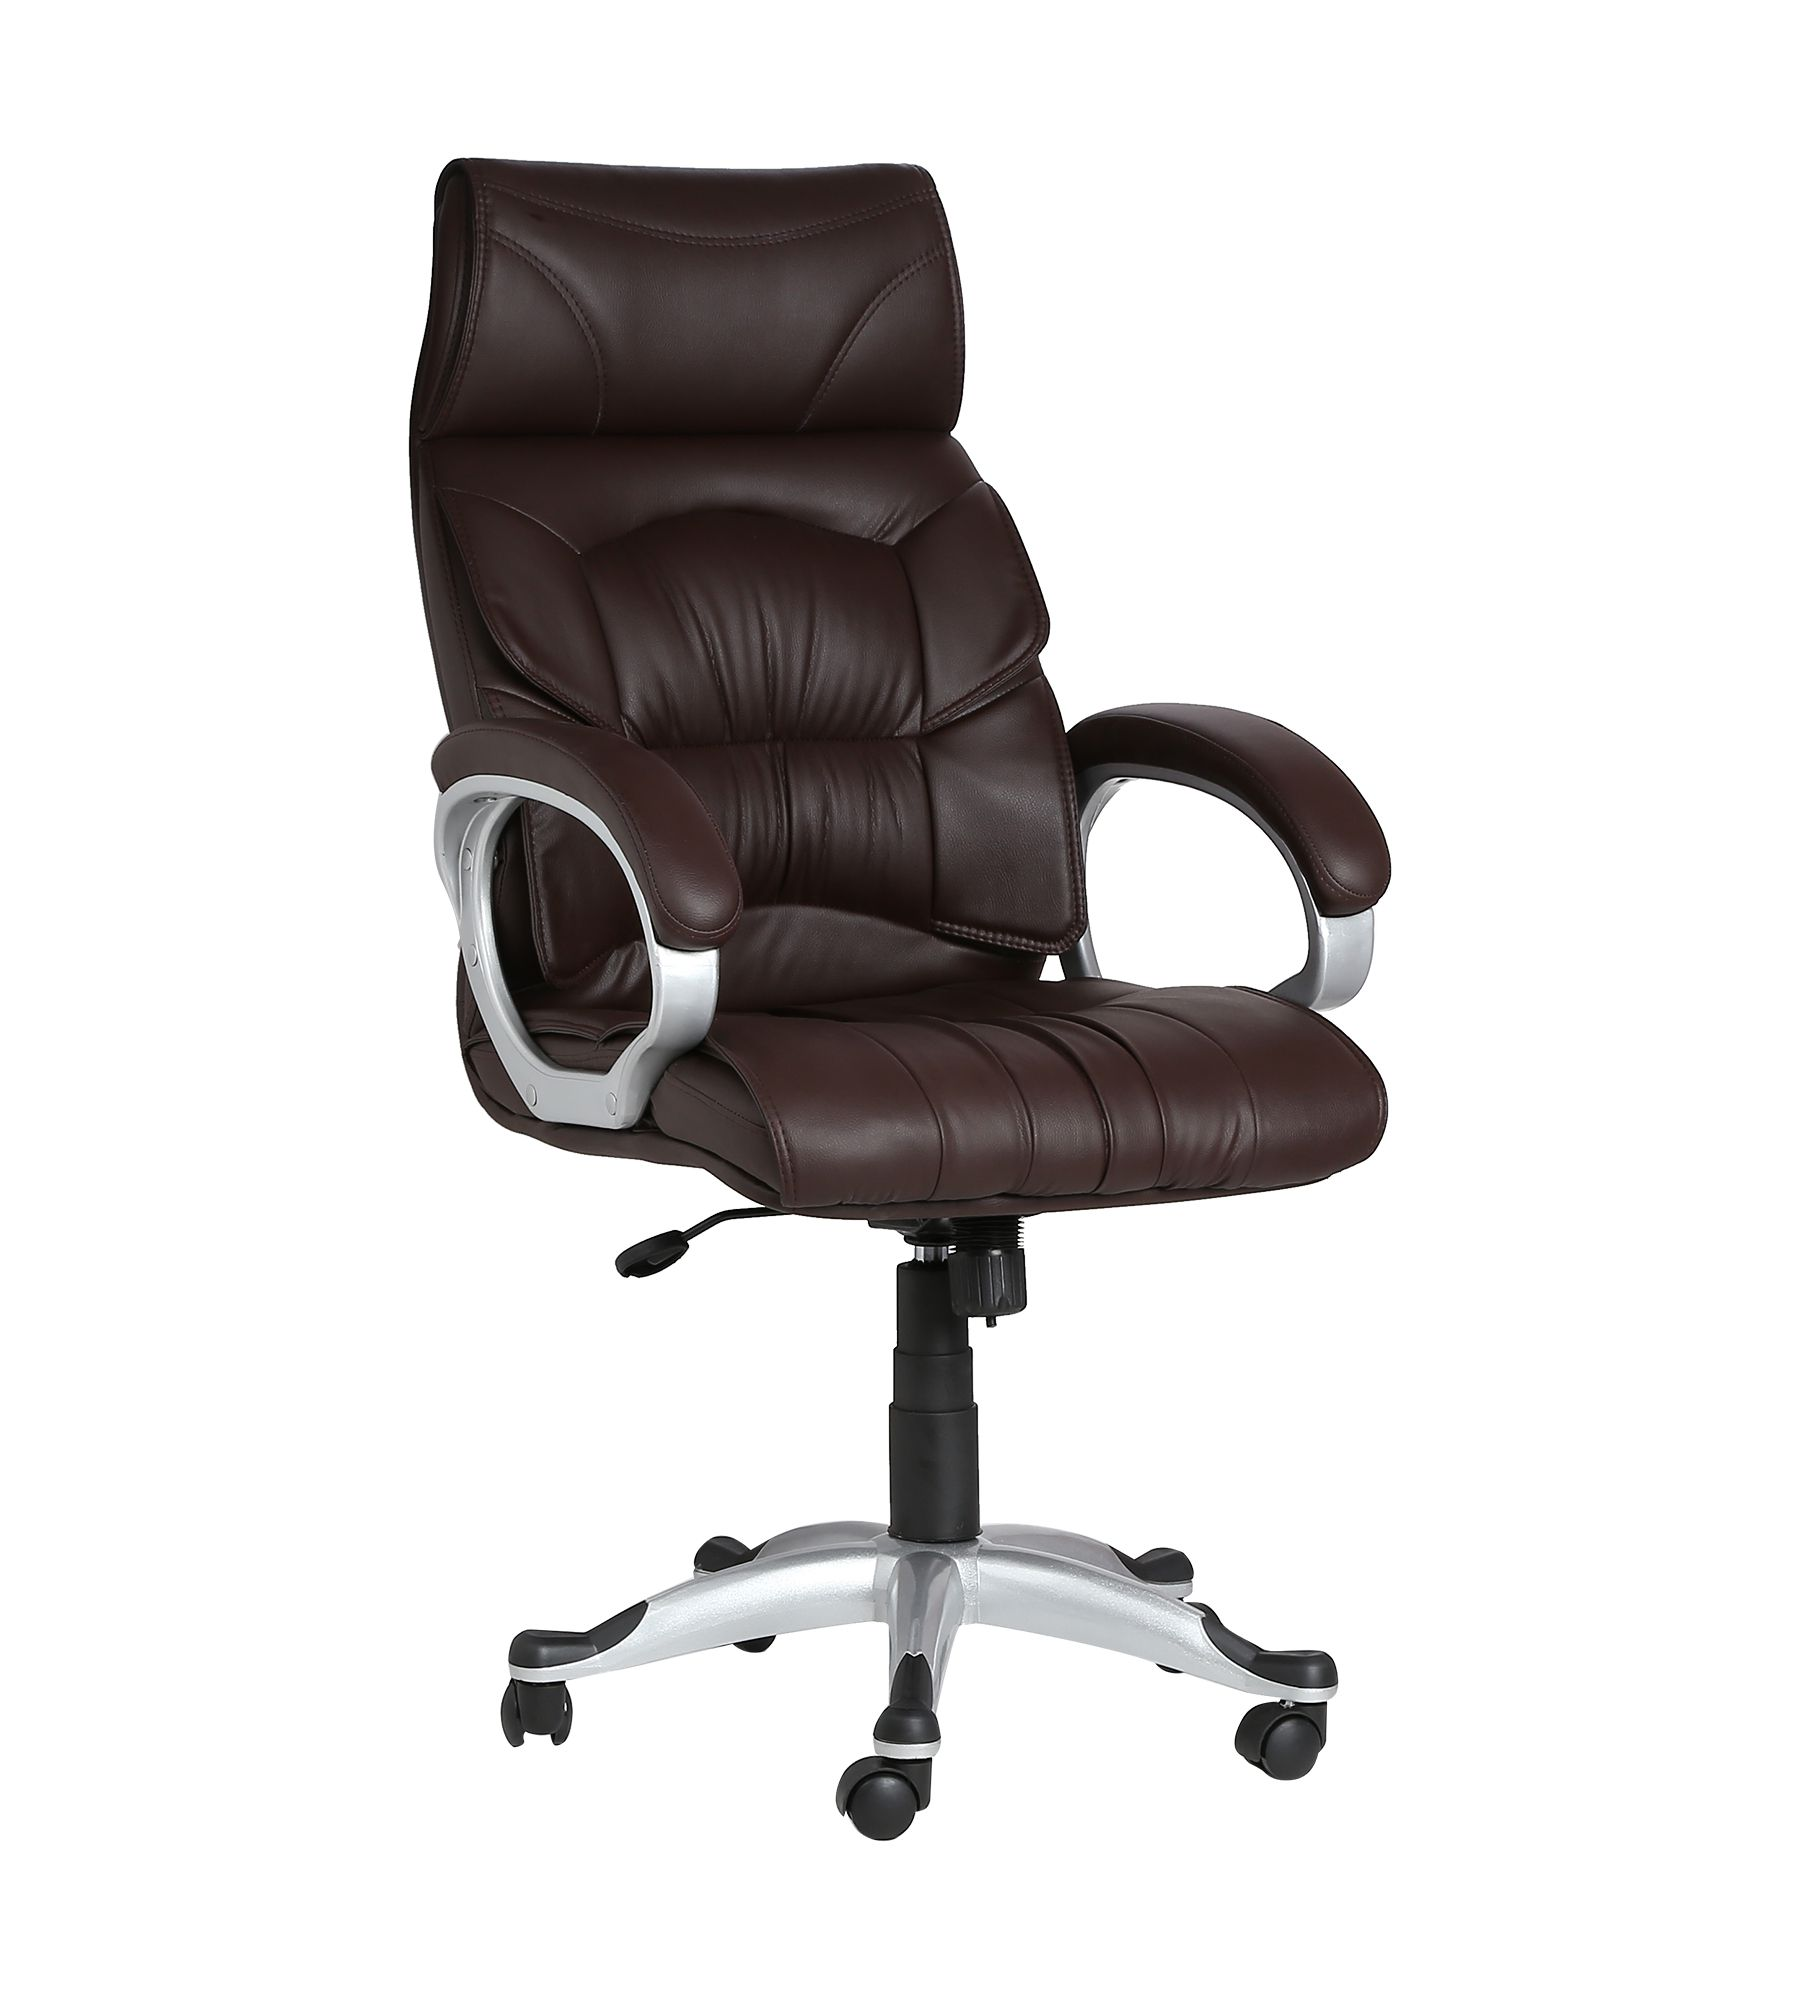 Doblepiel Executive High Back Brown Chair Buy Doblepiel Executive